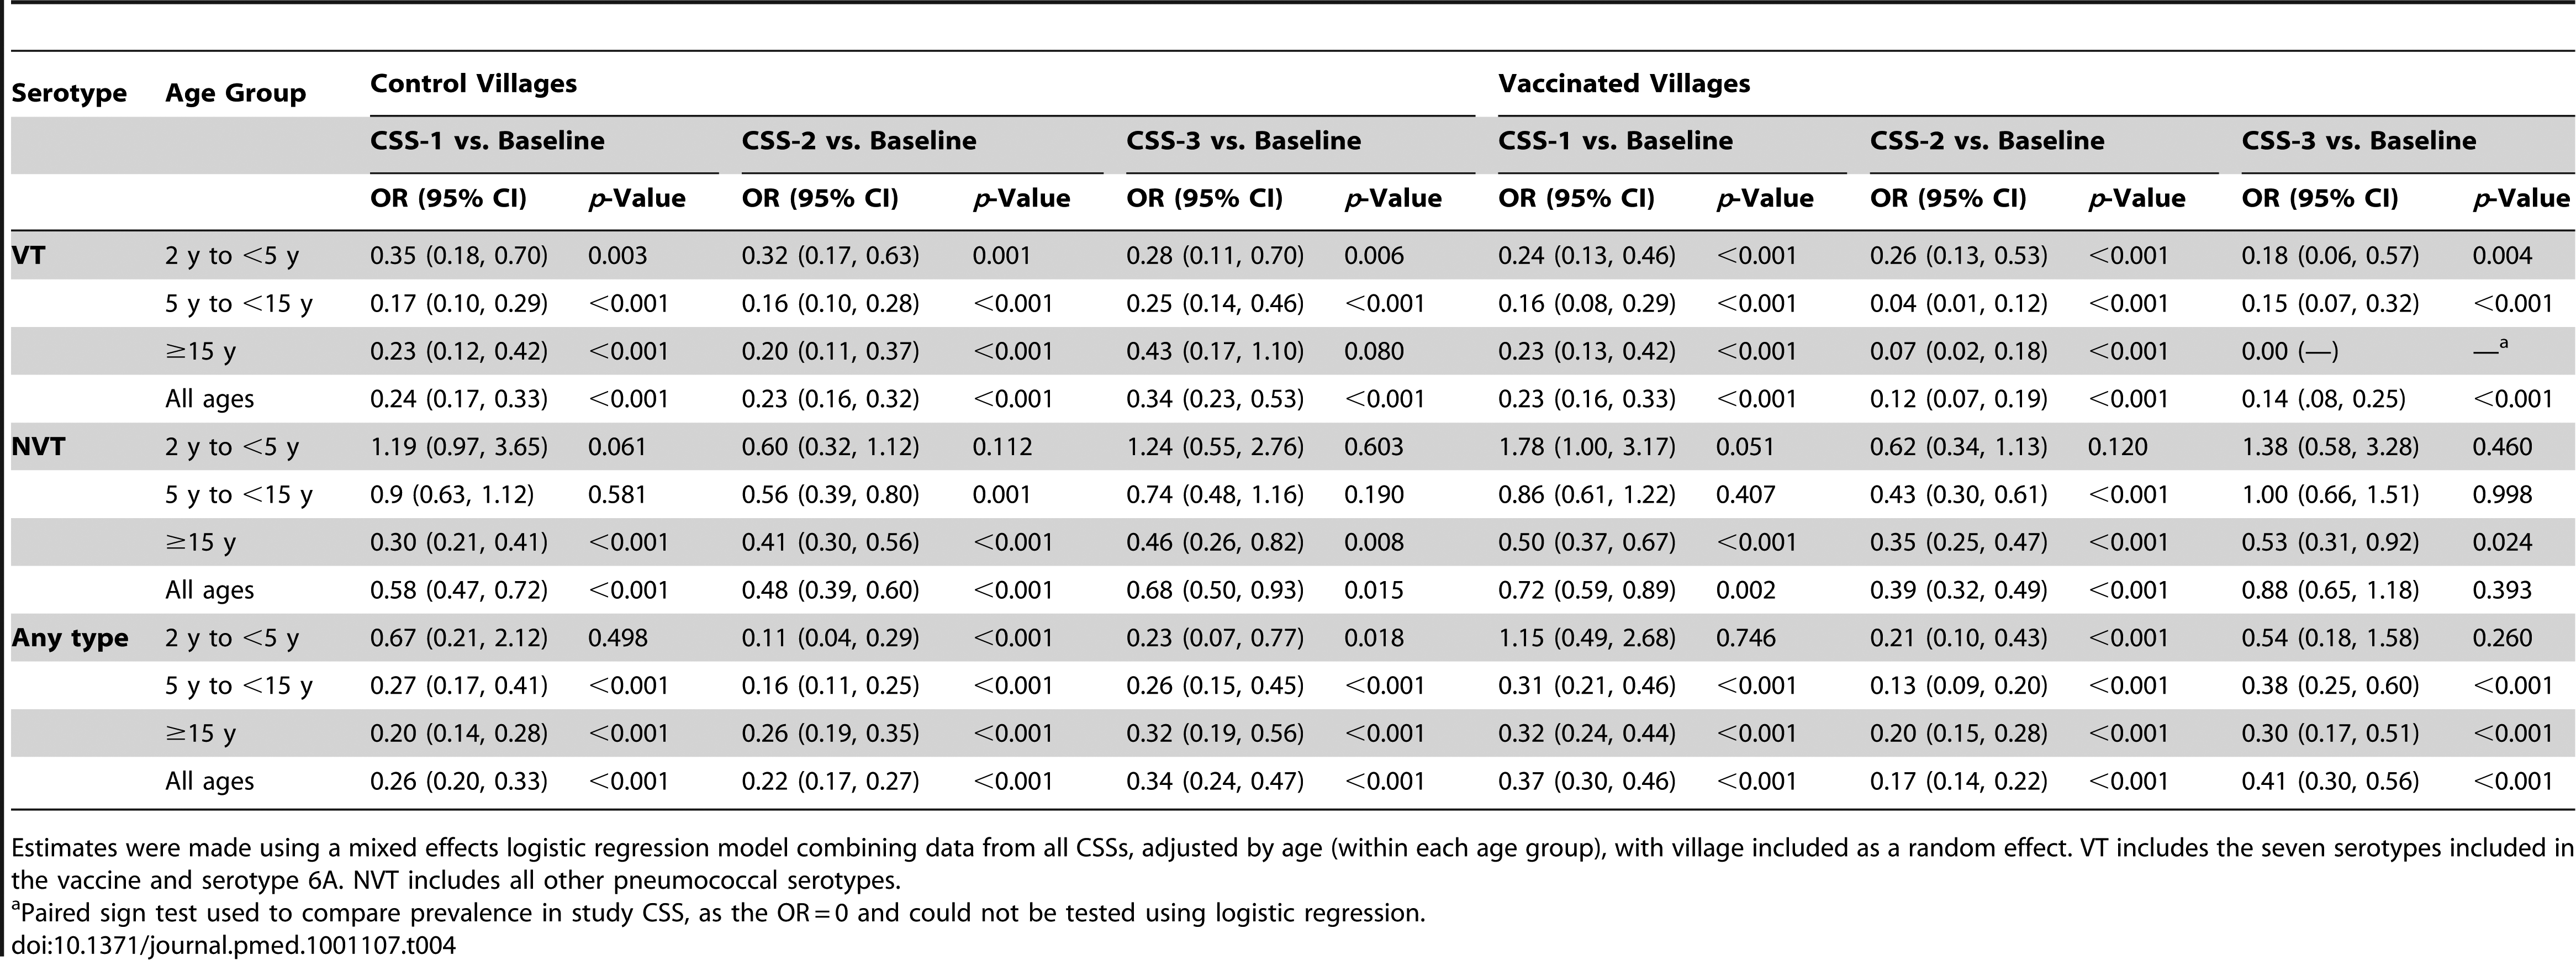 Comparison of the prevalence of pneumococcal nasopharyngeal carriage of VT serotypes, NVT serotypes, and any pneumococcal serotype between pre-vaccination CSS and each of the post-vaccination CSSs in vaccinated and control villages.